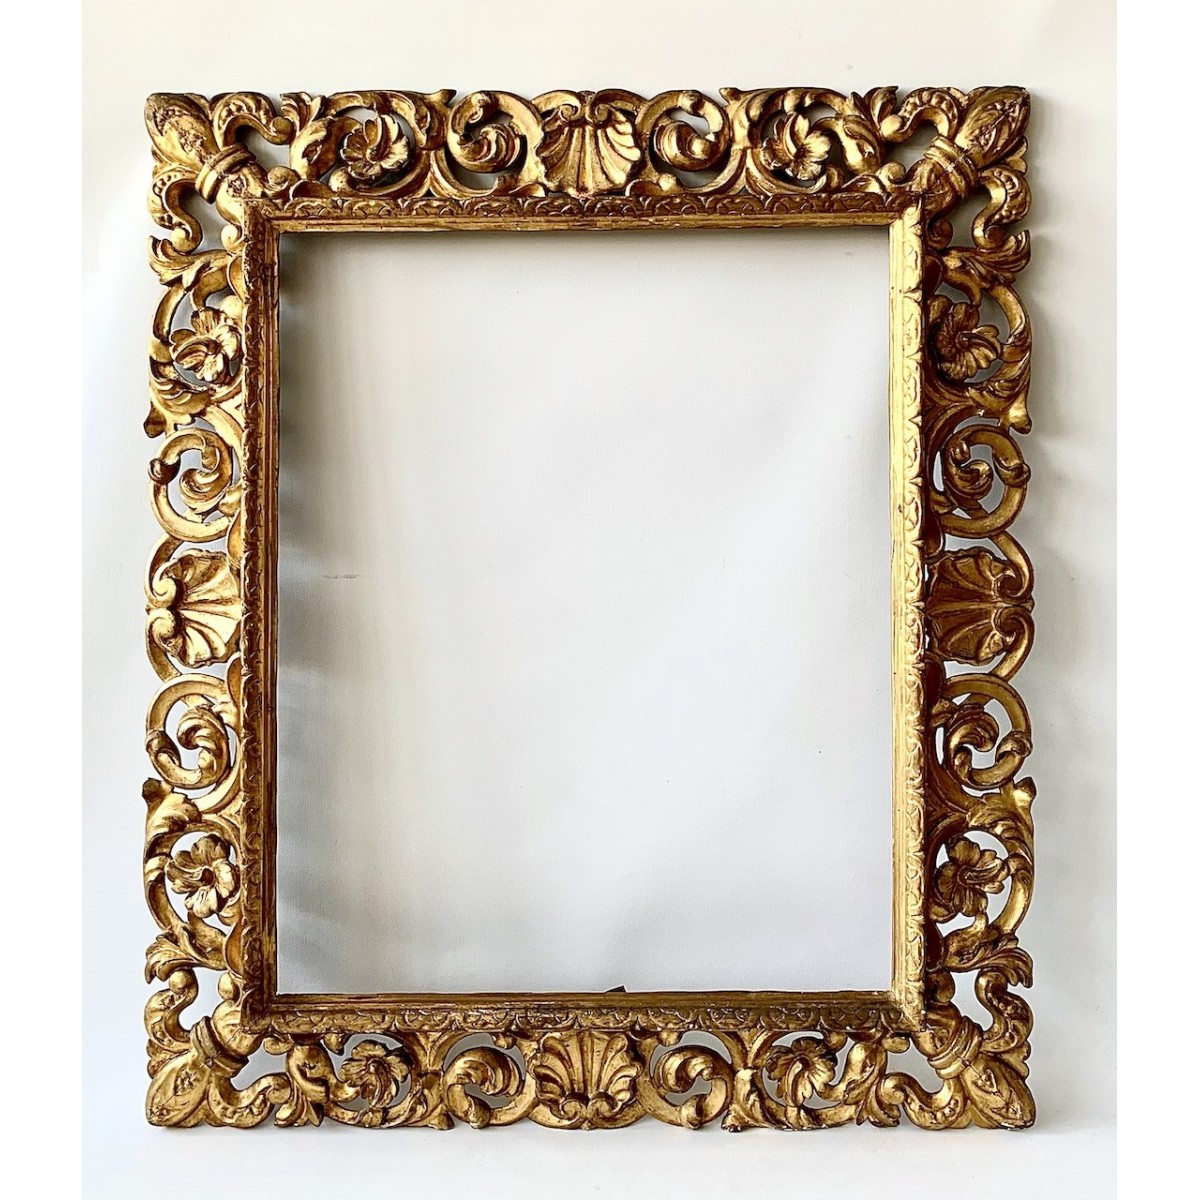 Carved and gilded frame of the mid-18th century